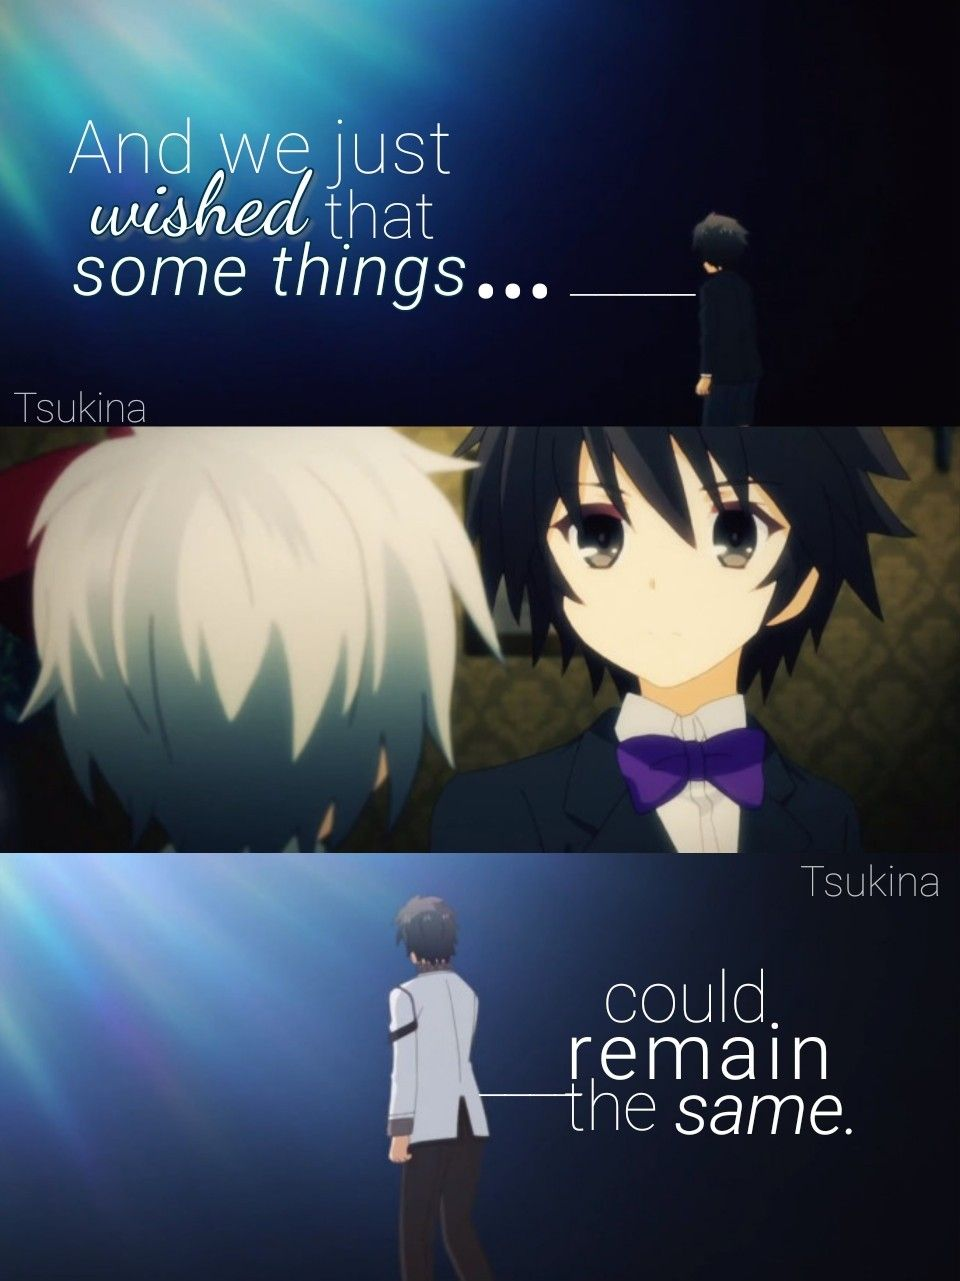 Anime Emo Quotes About Suicide: Sad Anime Quotes